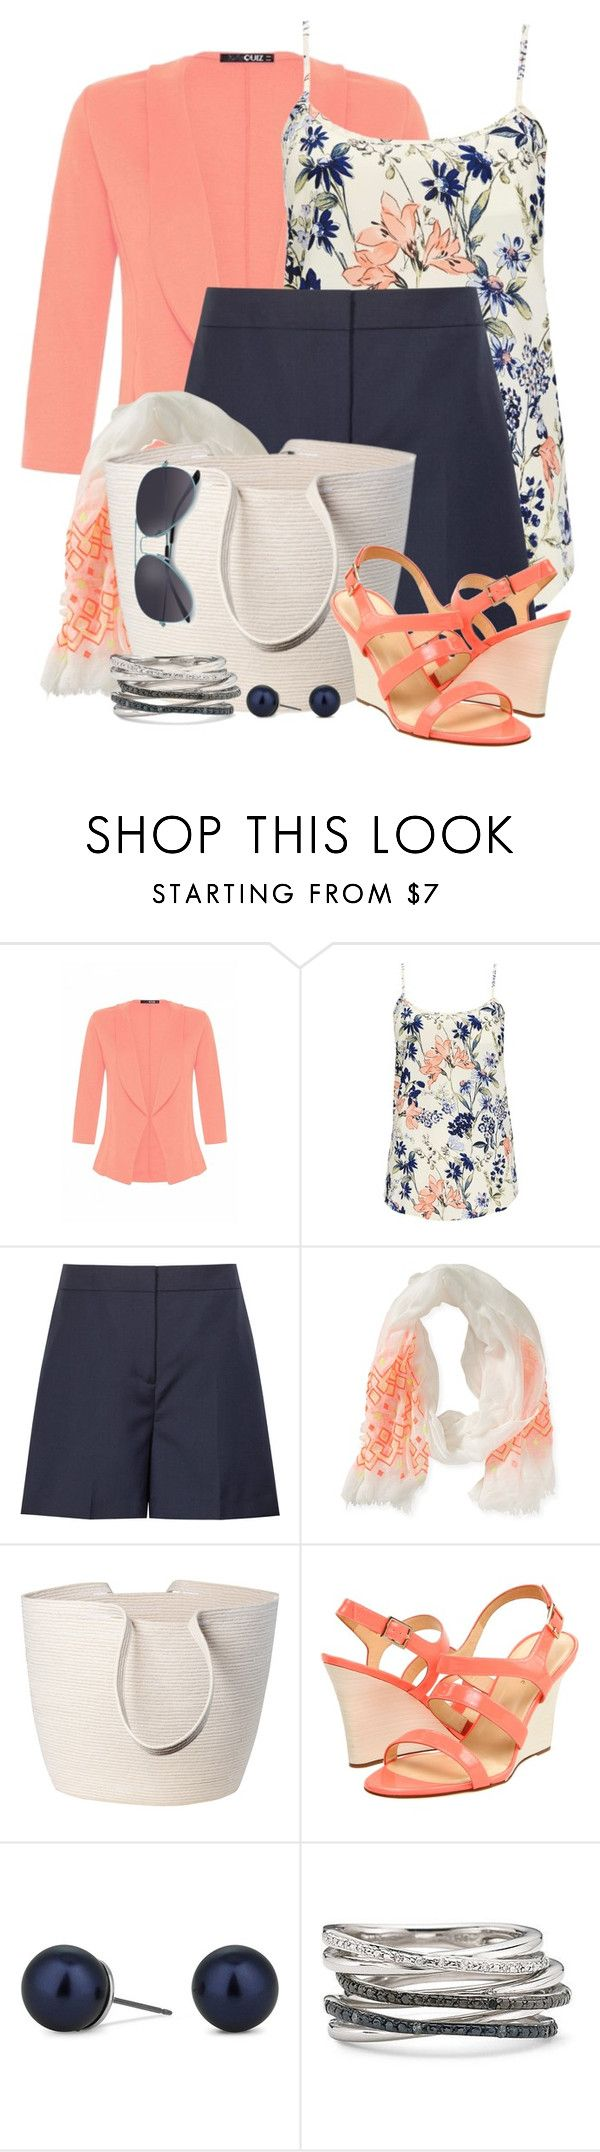 """""""Blazer, Tank & Shorts"""" by brendariley-1 ❤ liked on Polyvore featuring Quiz, Wallis, Reiss, Aéropostale, Doug Johnston, Kate Spade and Betty Jackson"""